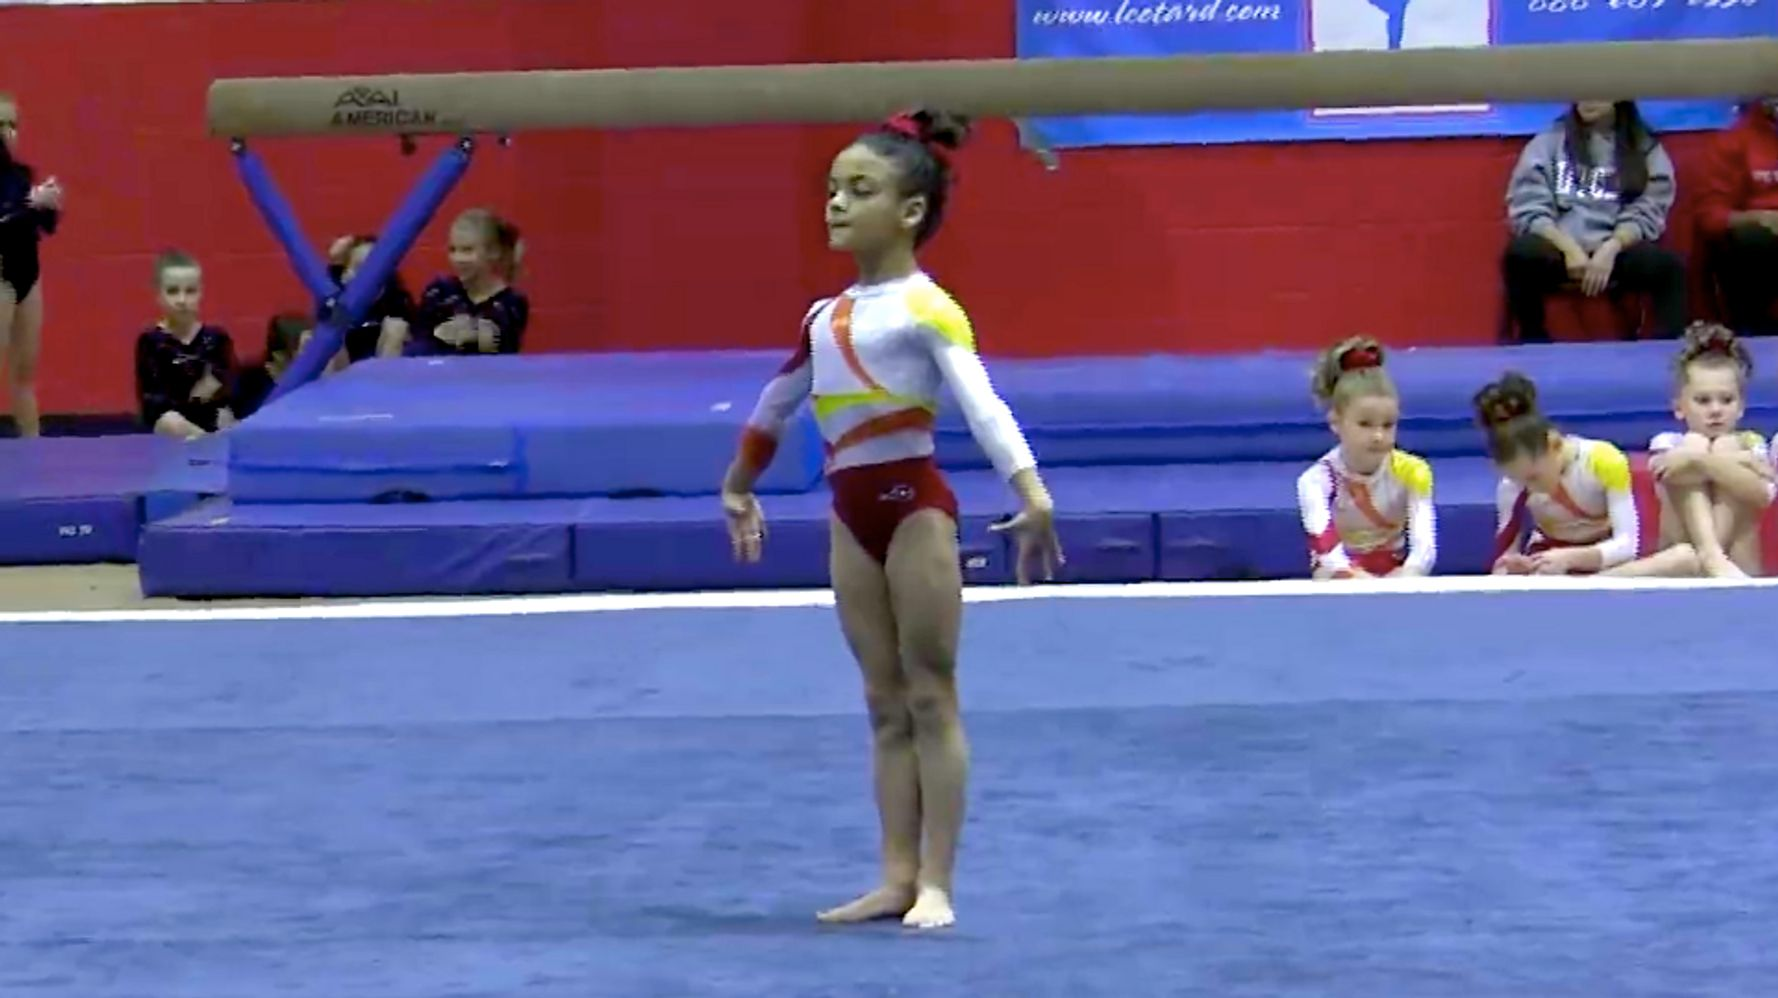 Young Latina Gymnast Laurie Hernandez Earns Spot On U.S